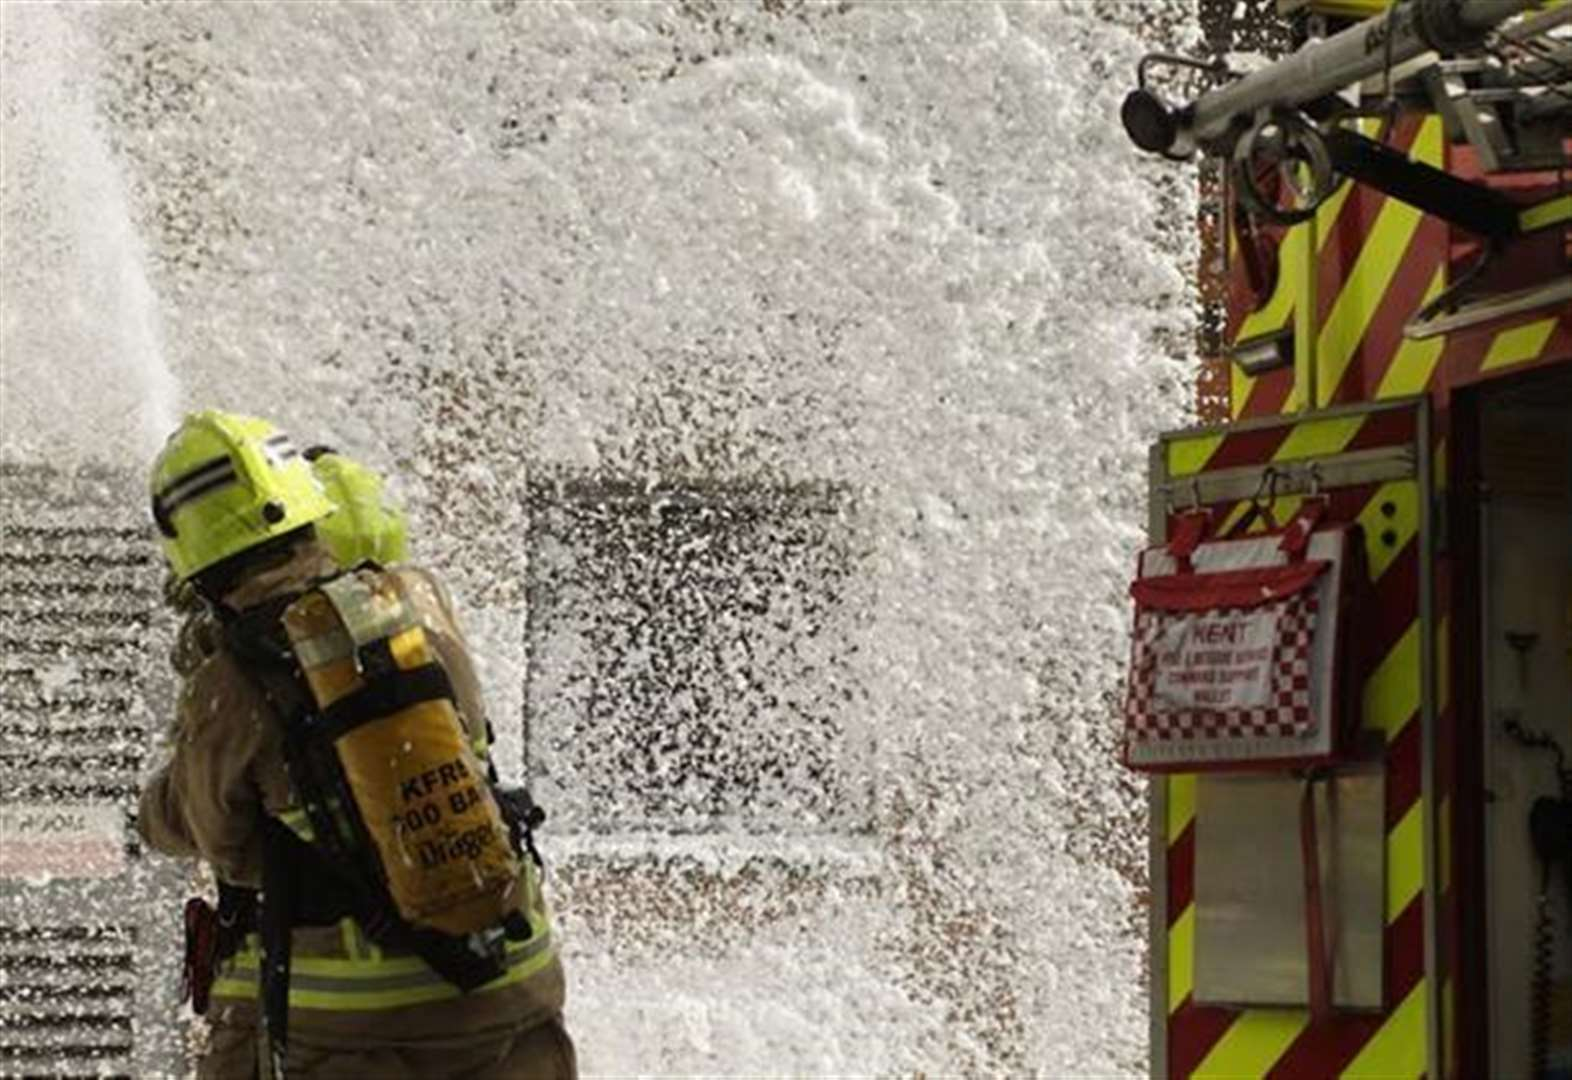 Firefighters tackle flats blaze